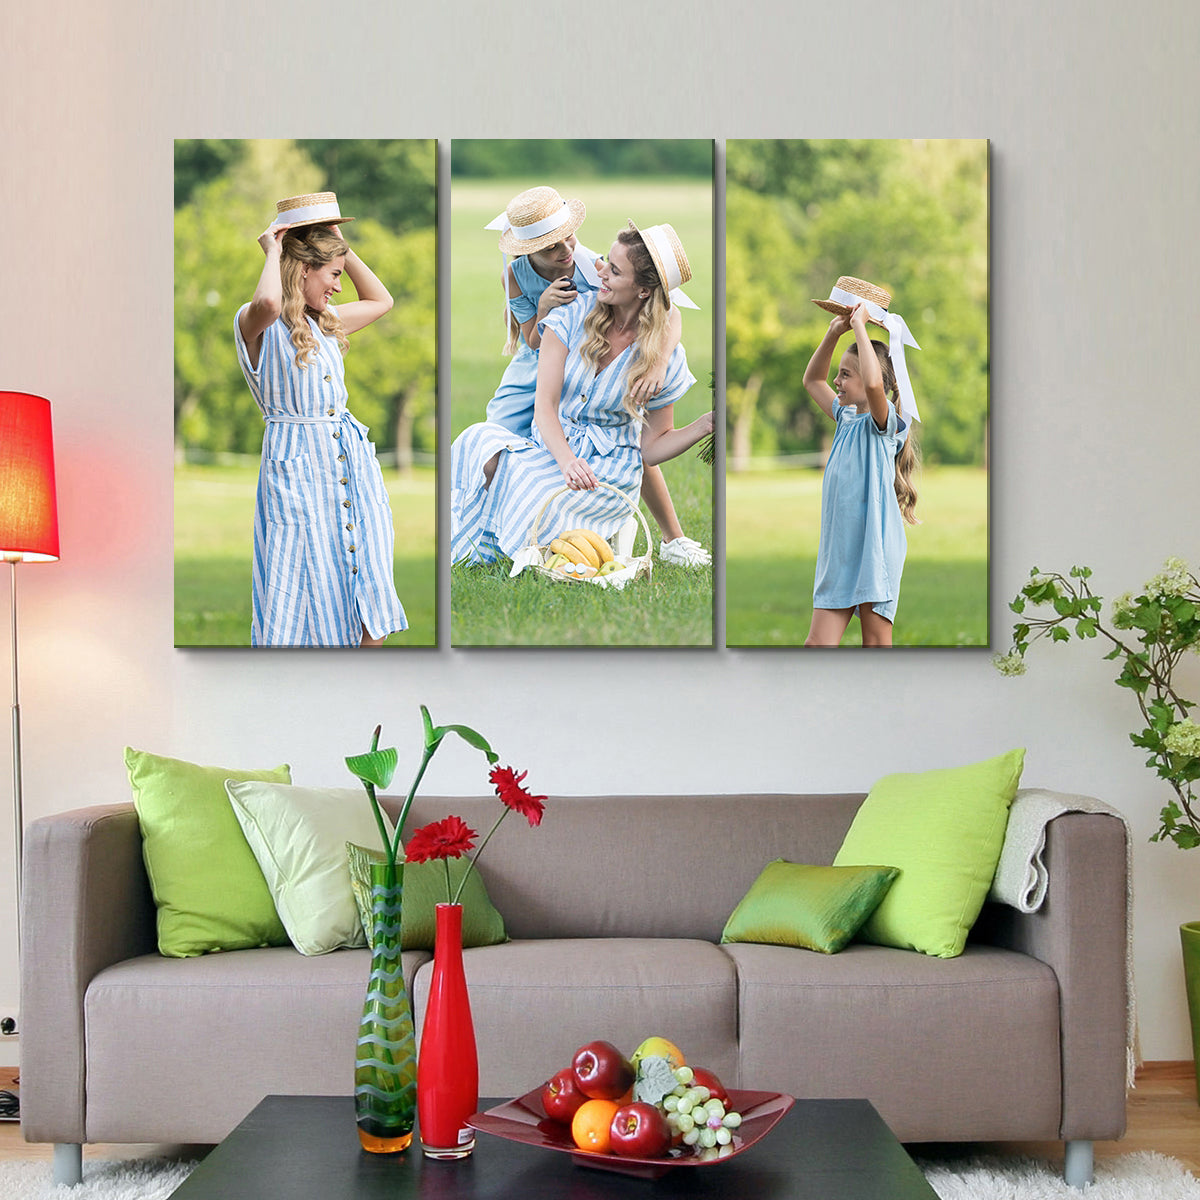 Wall Display Canvas Photo Prints - 3 Horizontal